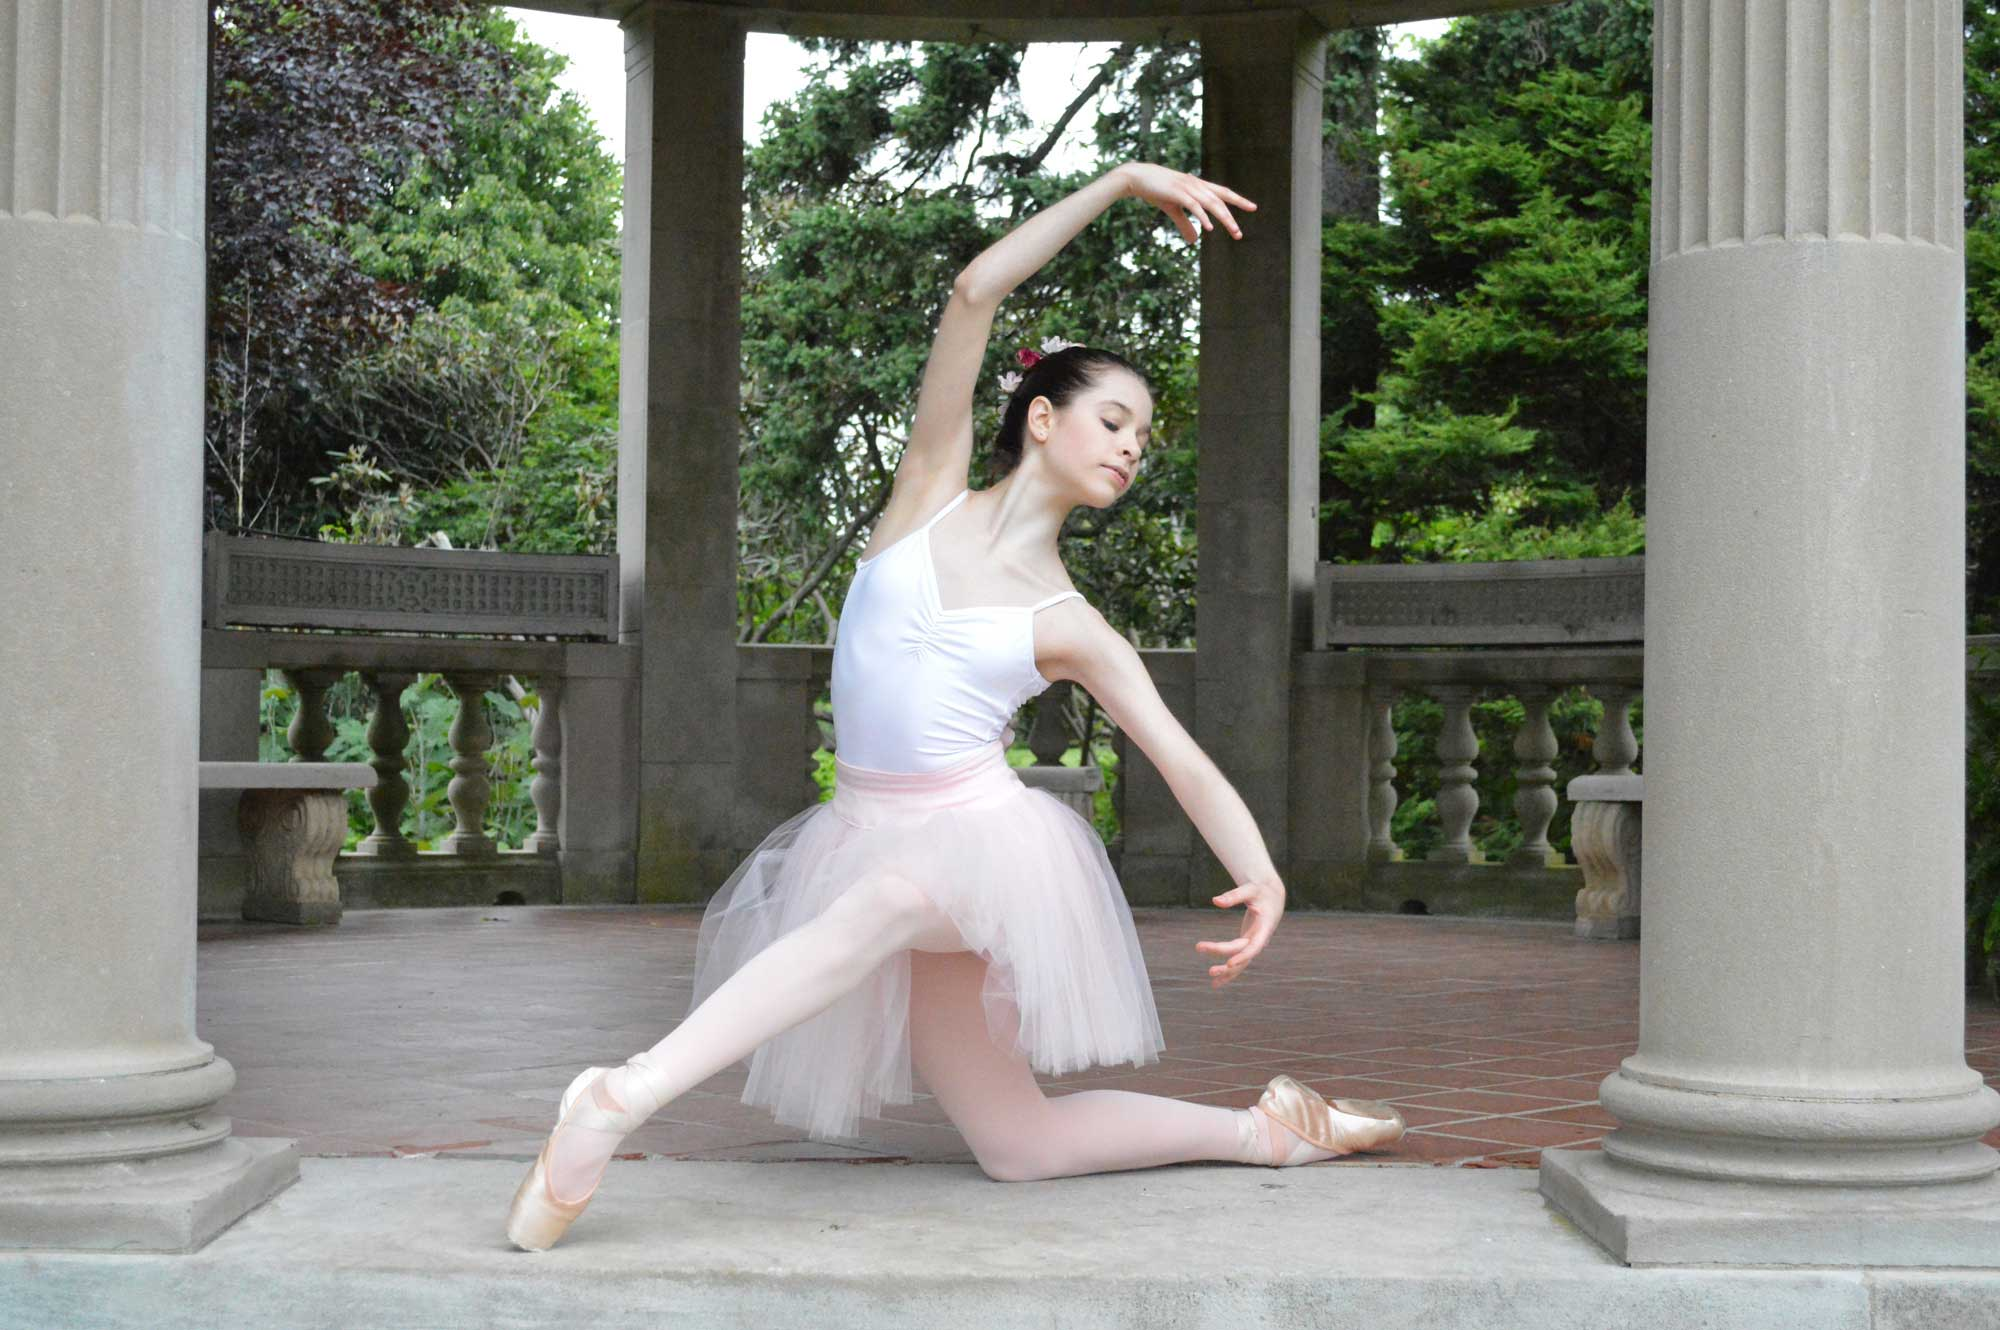 Donations to Eastern Connecticut Ballet